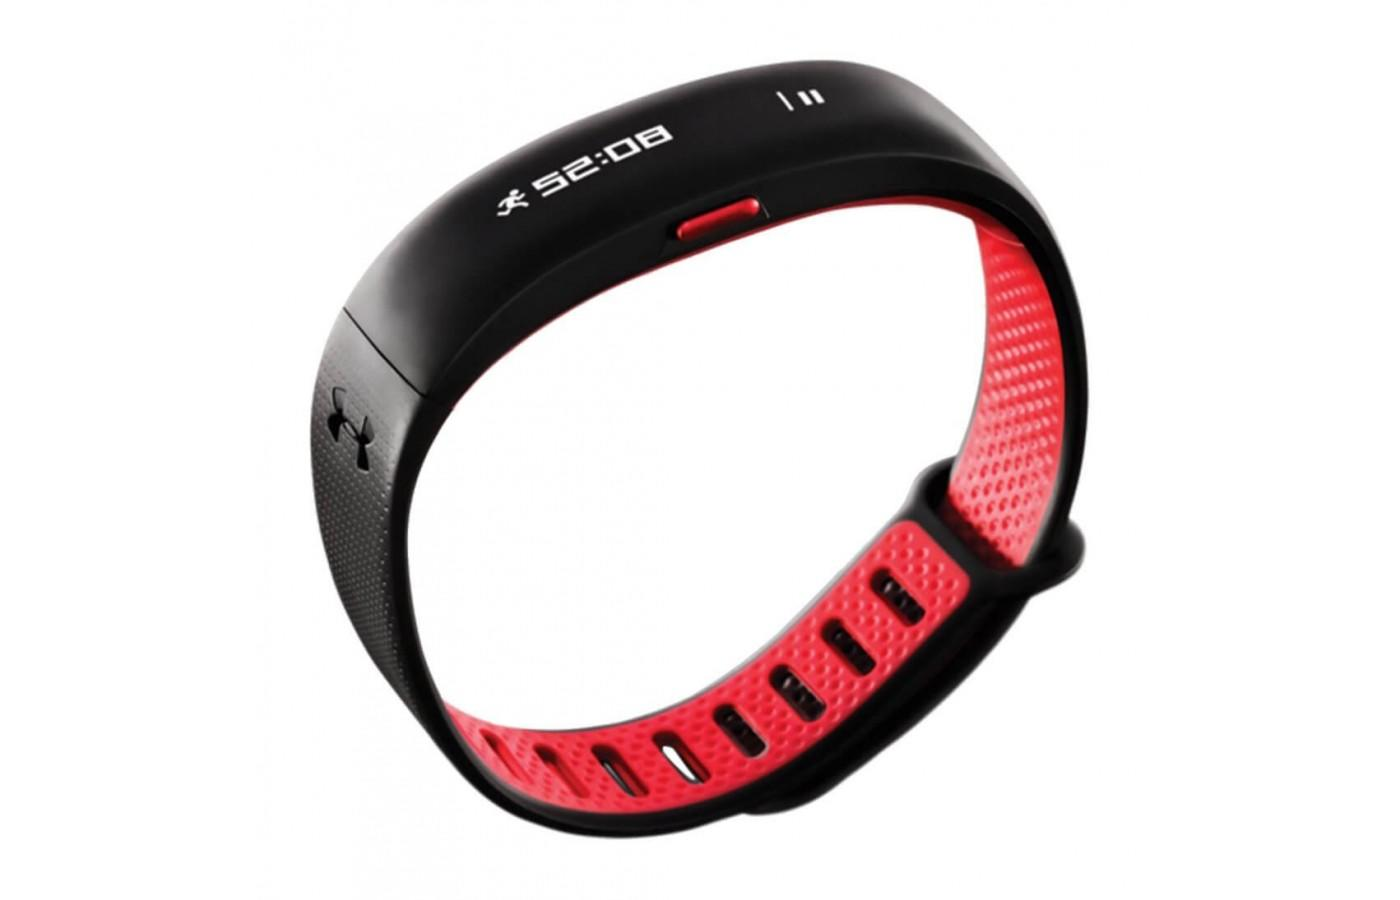 The Under Armour UA Activity Band and Fitness Tracker